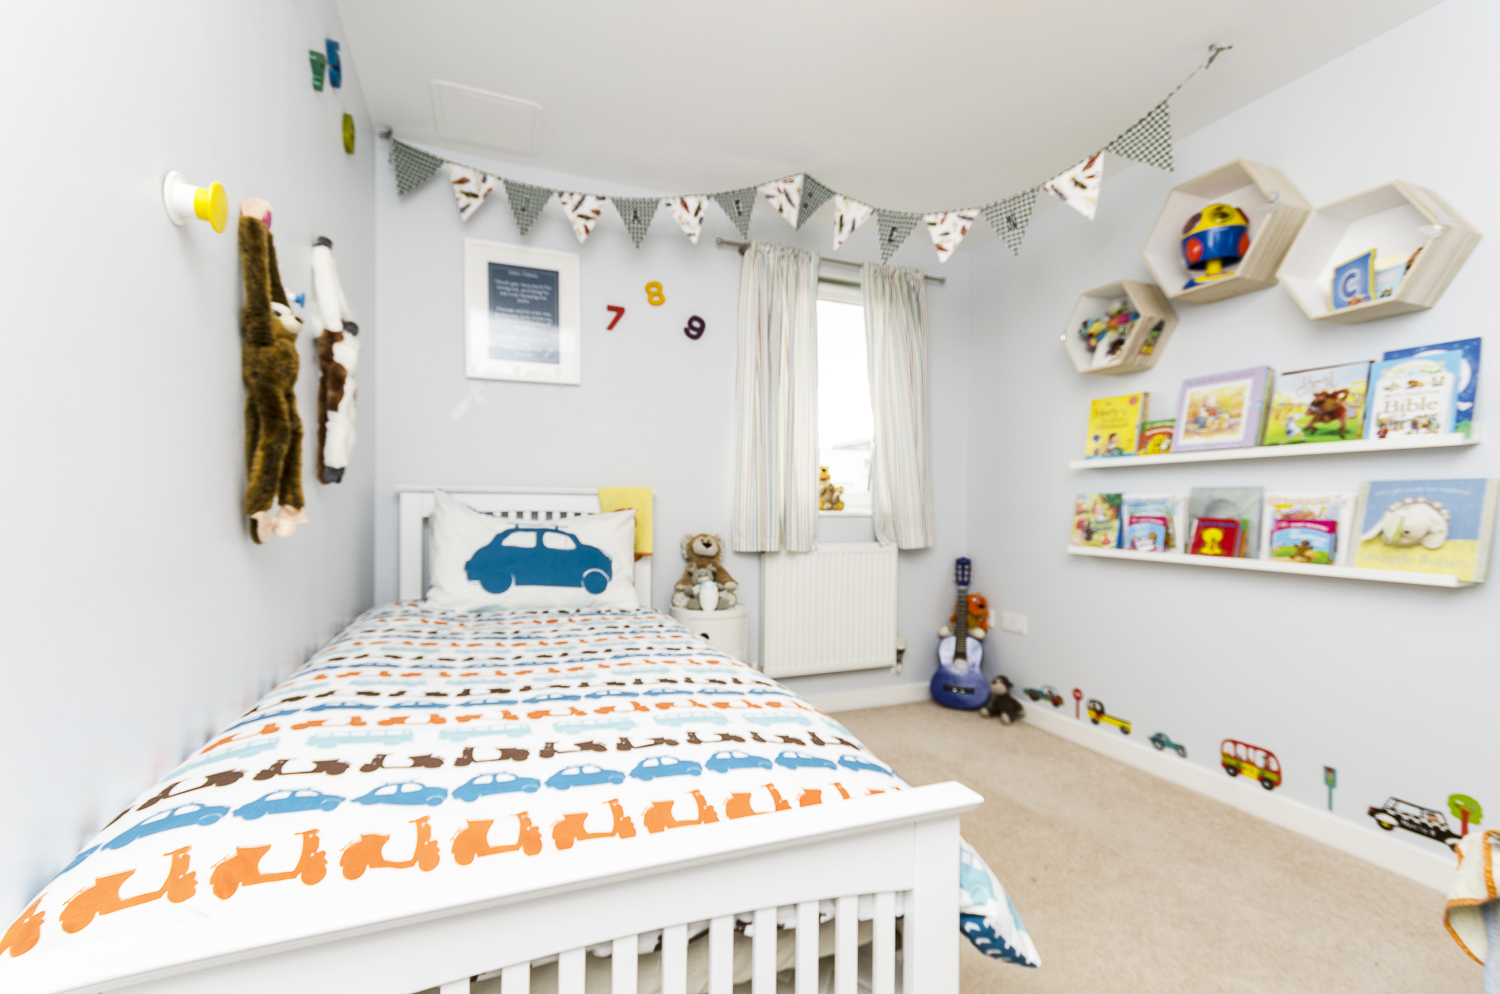 Children 39 s bedroom decorating ideas playing in style for Room decor ideas for toddlers